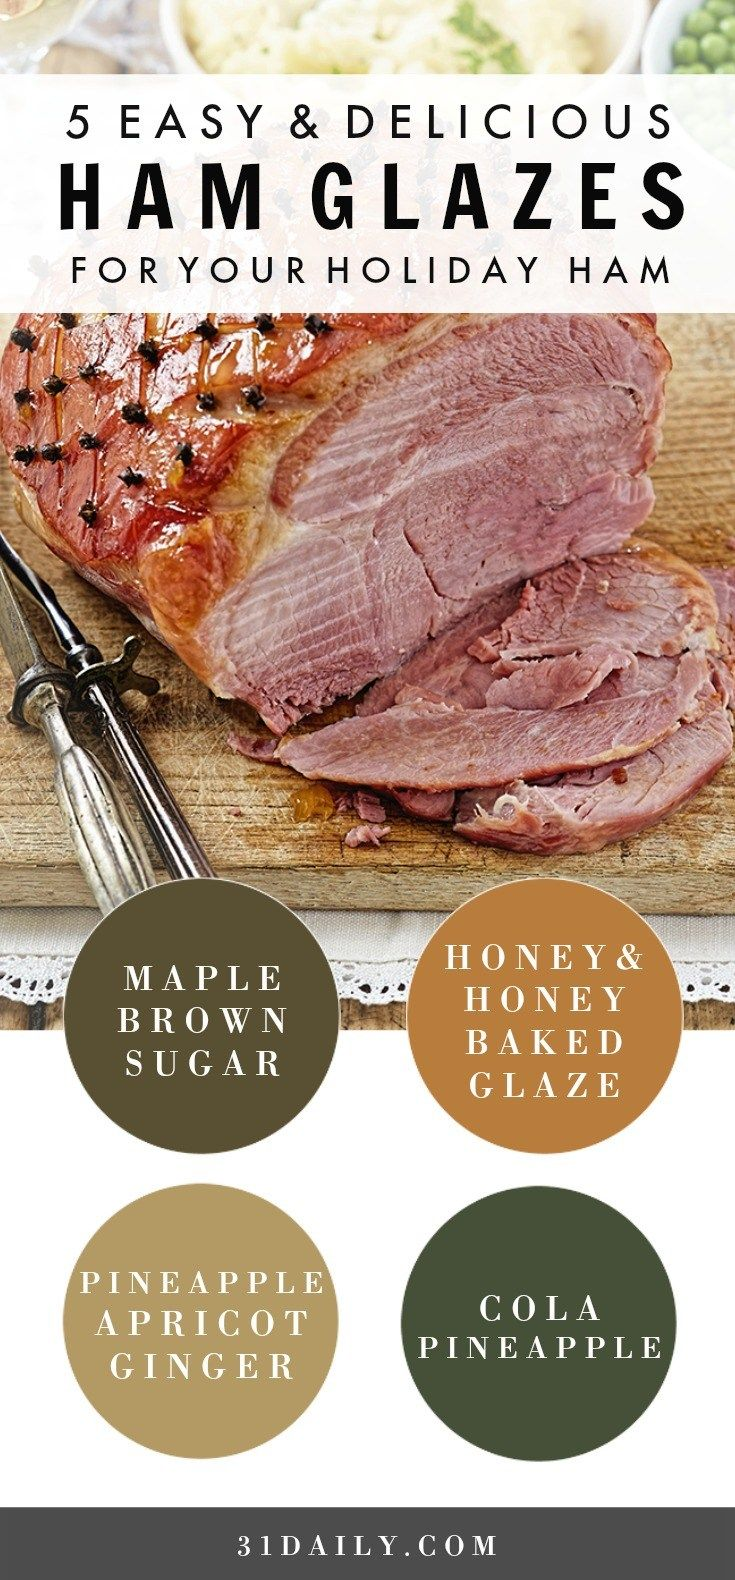 5 Easy and Delicious Glazes for Holiday Hams | 31Daily.com